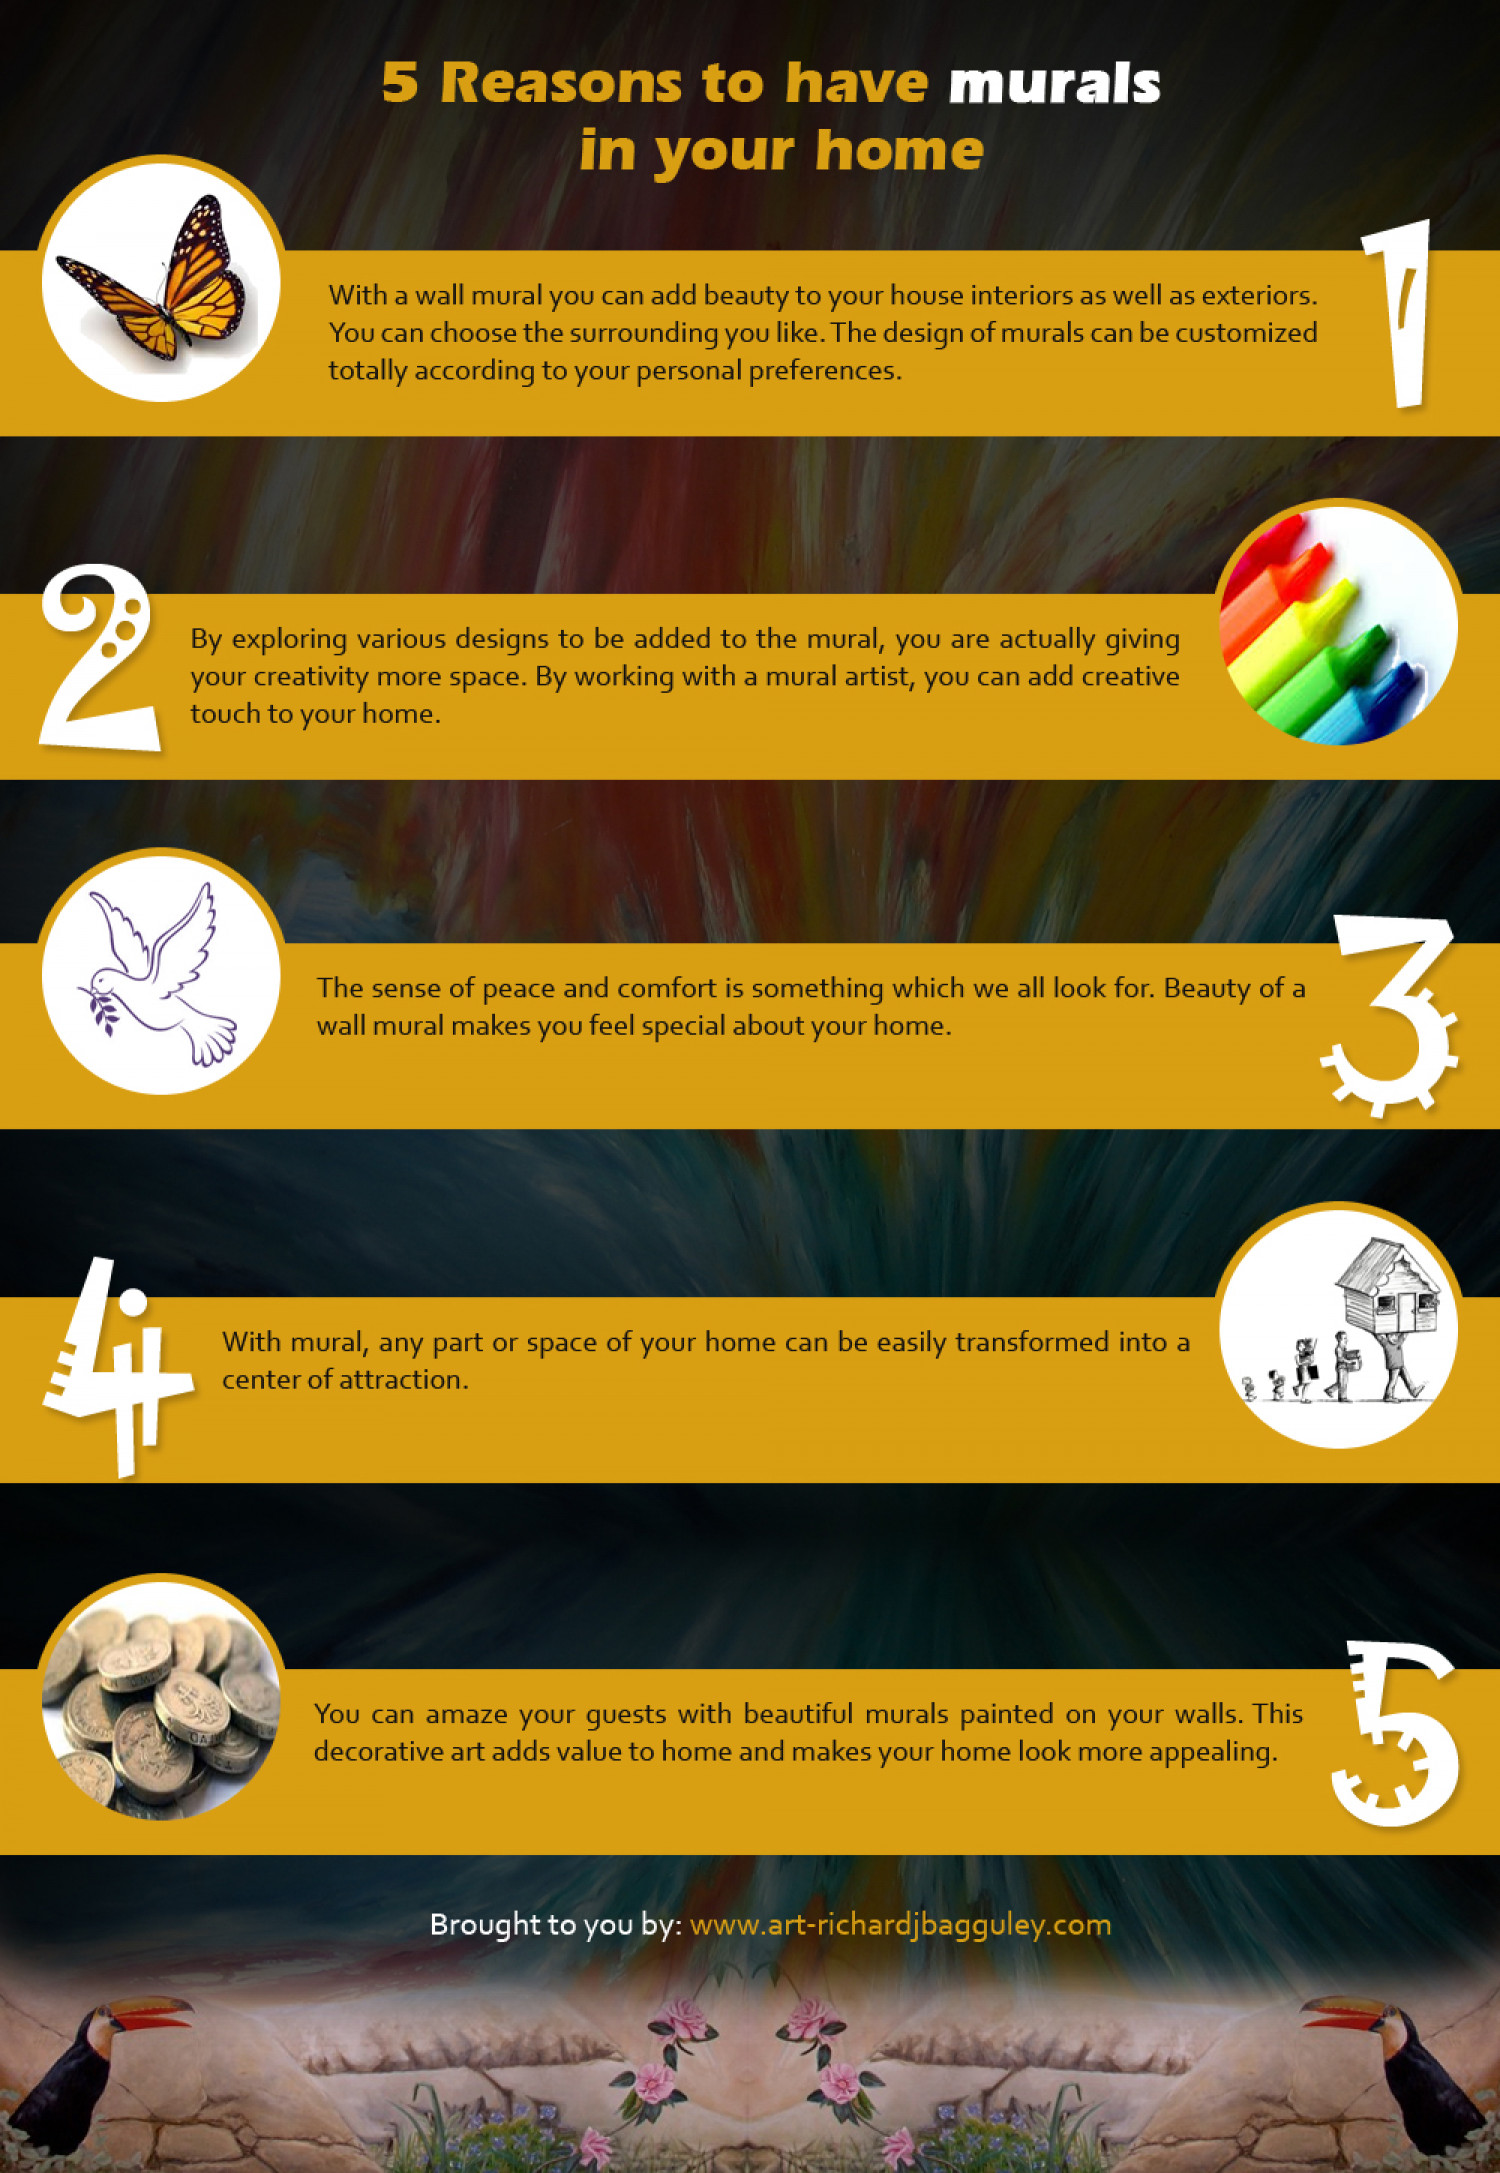 5 Reasons to Have Murals in Your Home Infographic